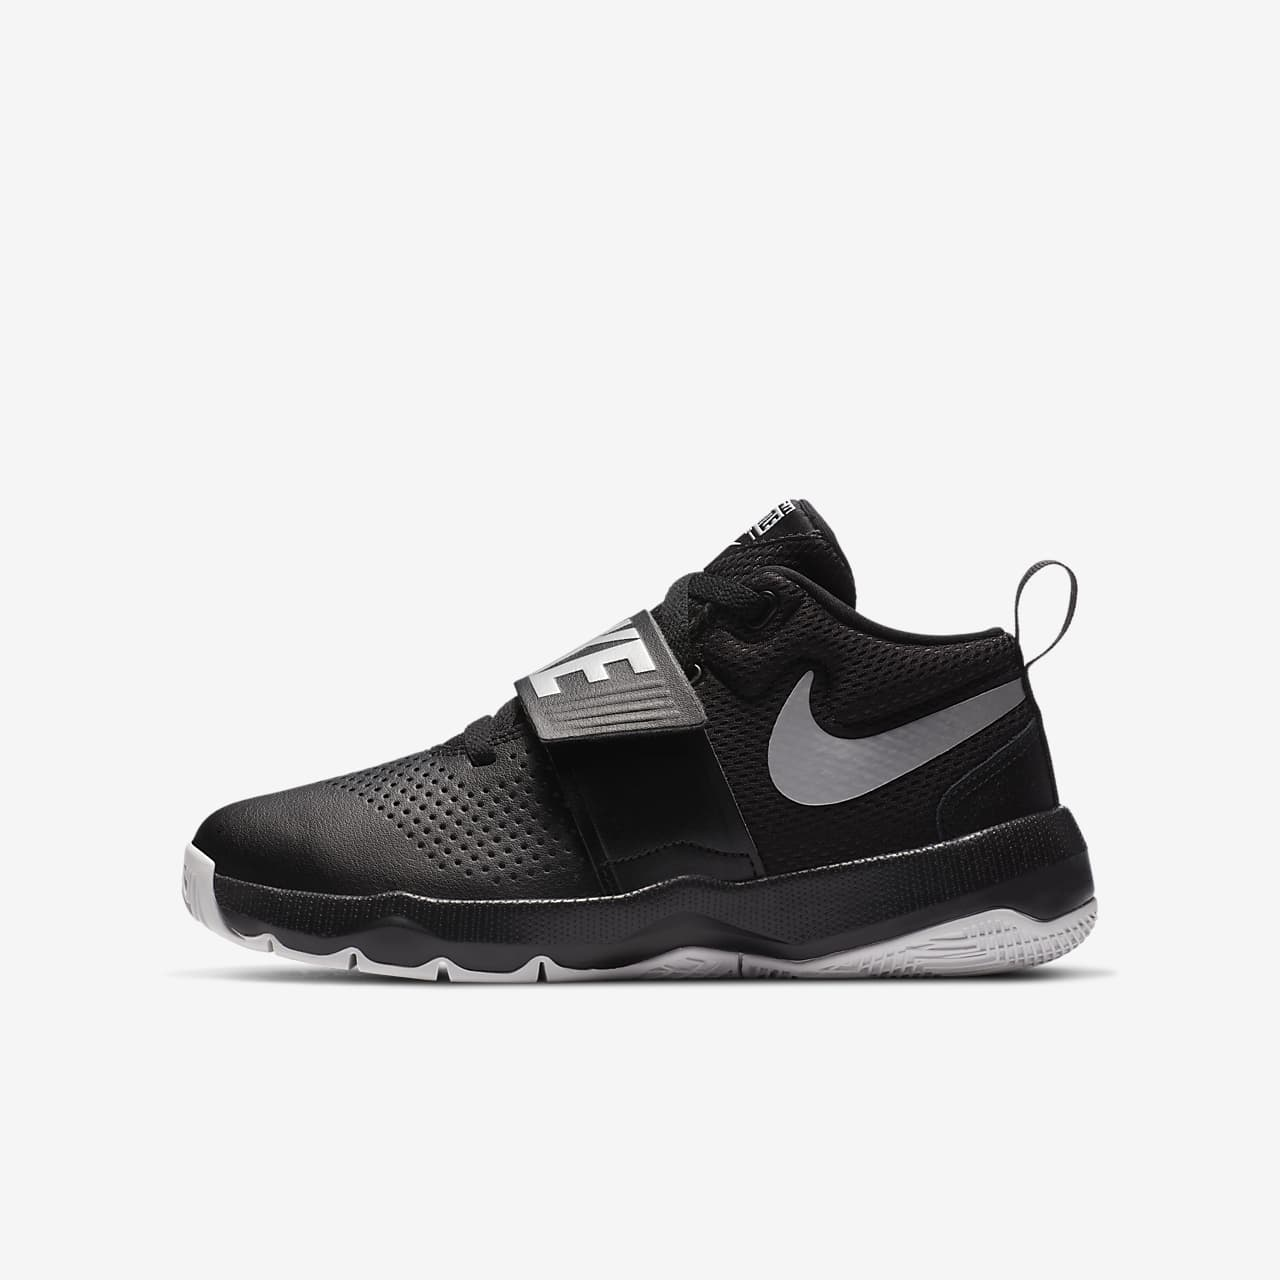 size 40 783c0 c7815 Nike Team Hustle D 8